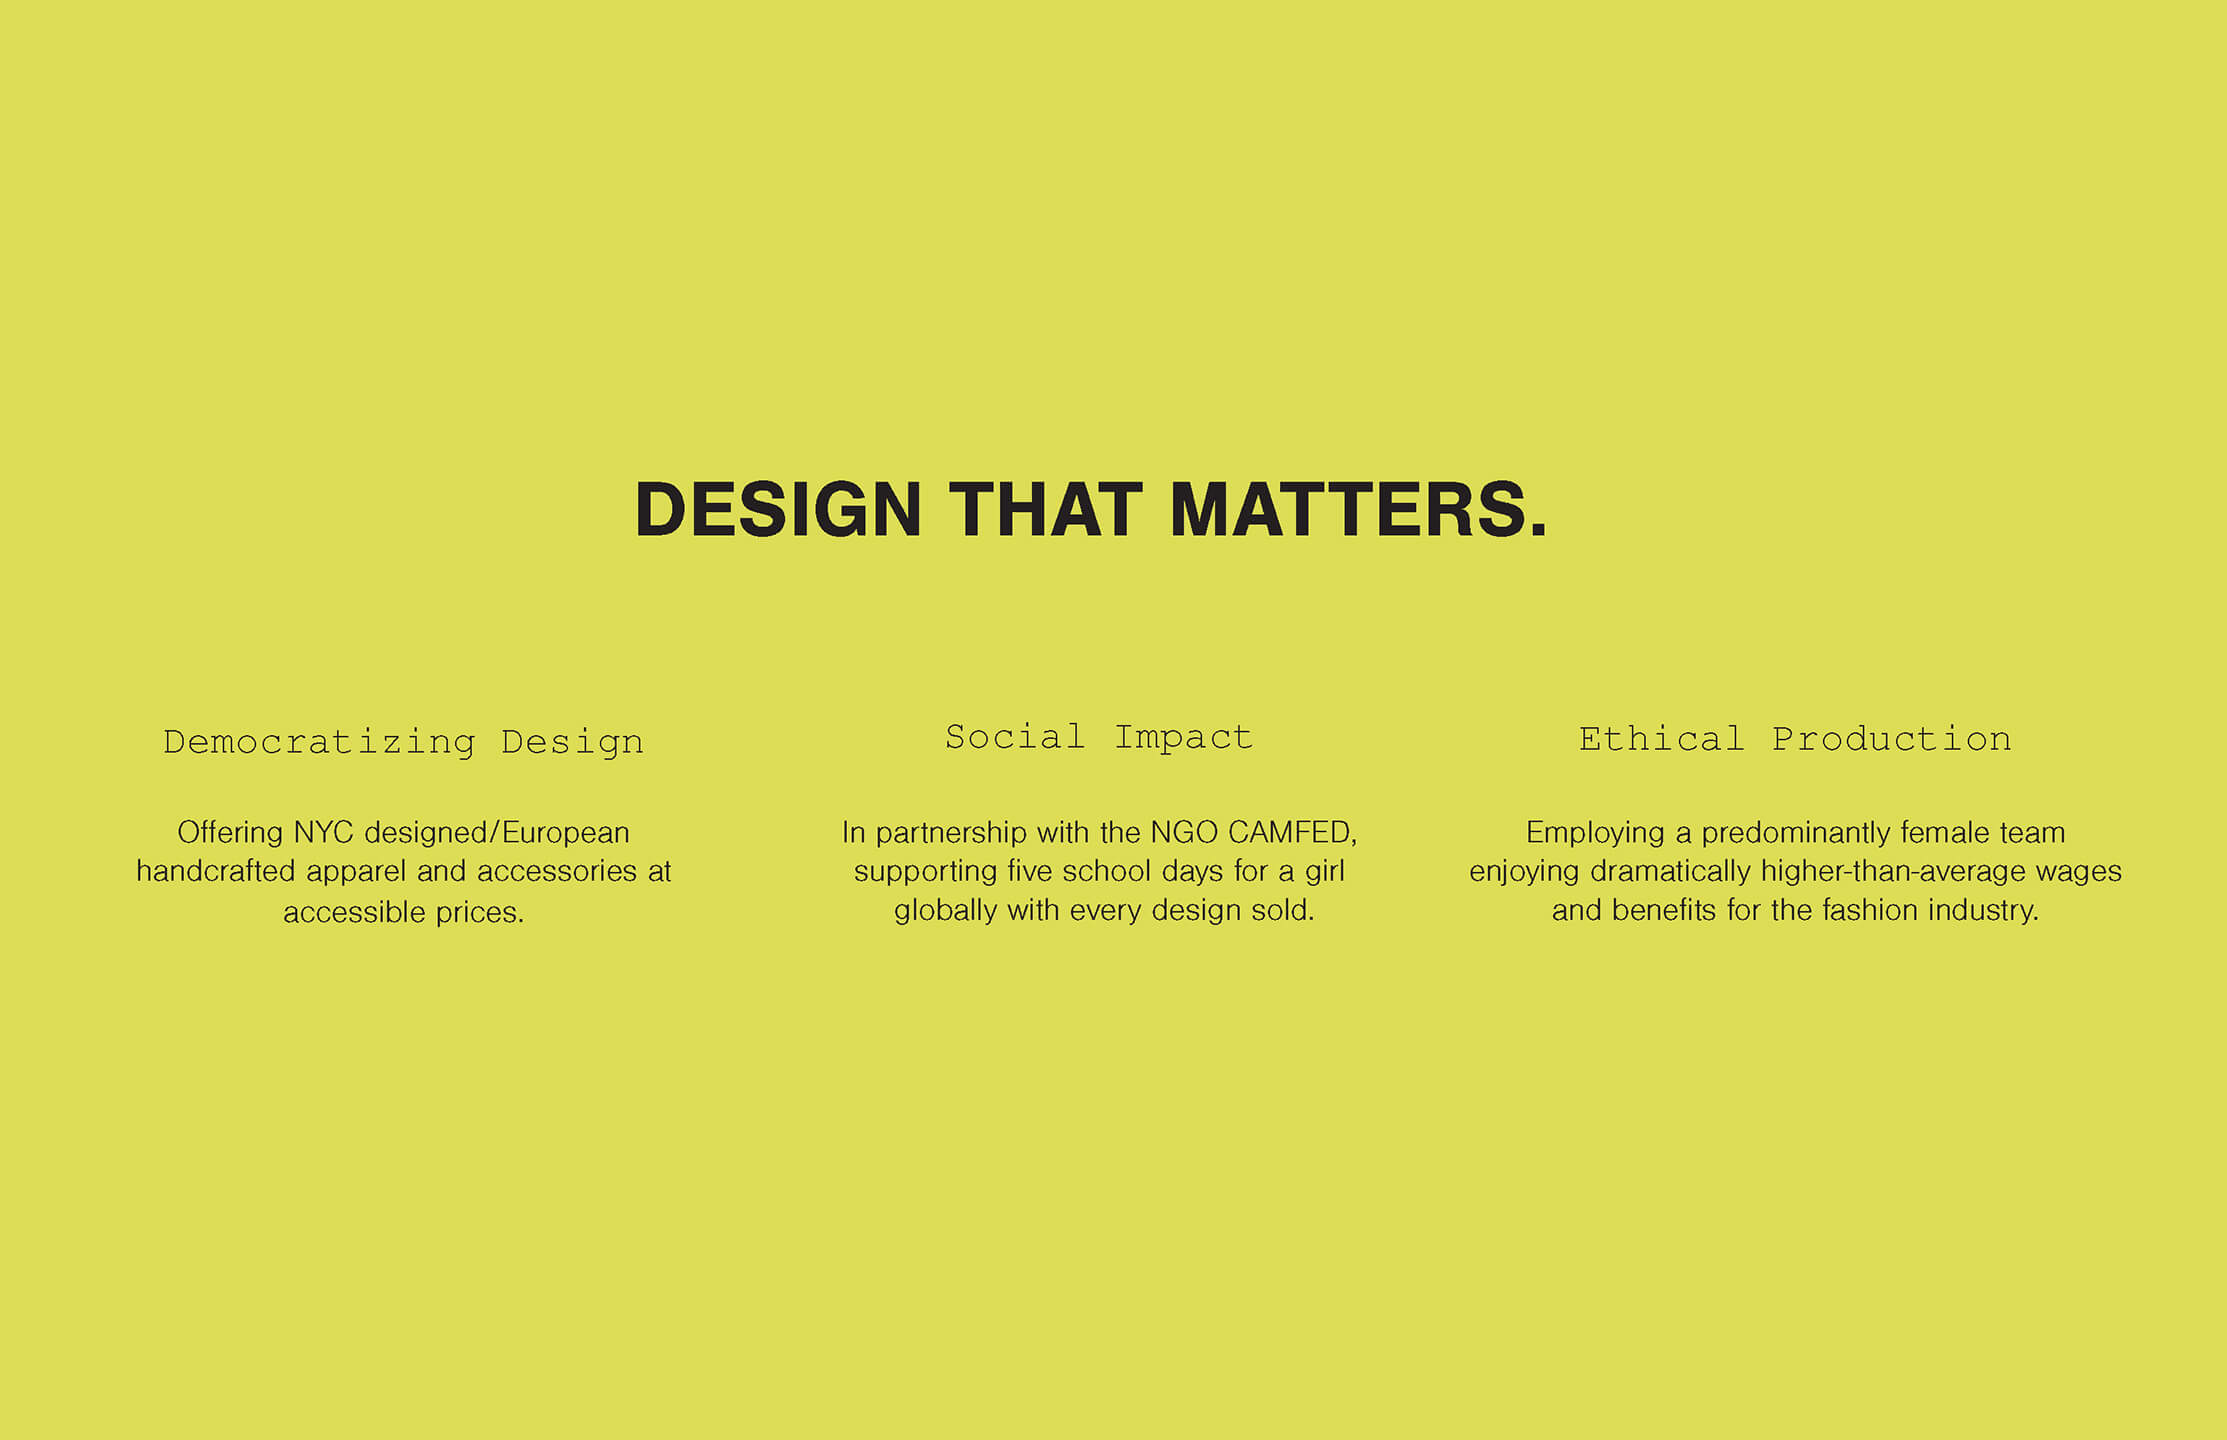 Design that matters marcella nyc